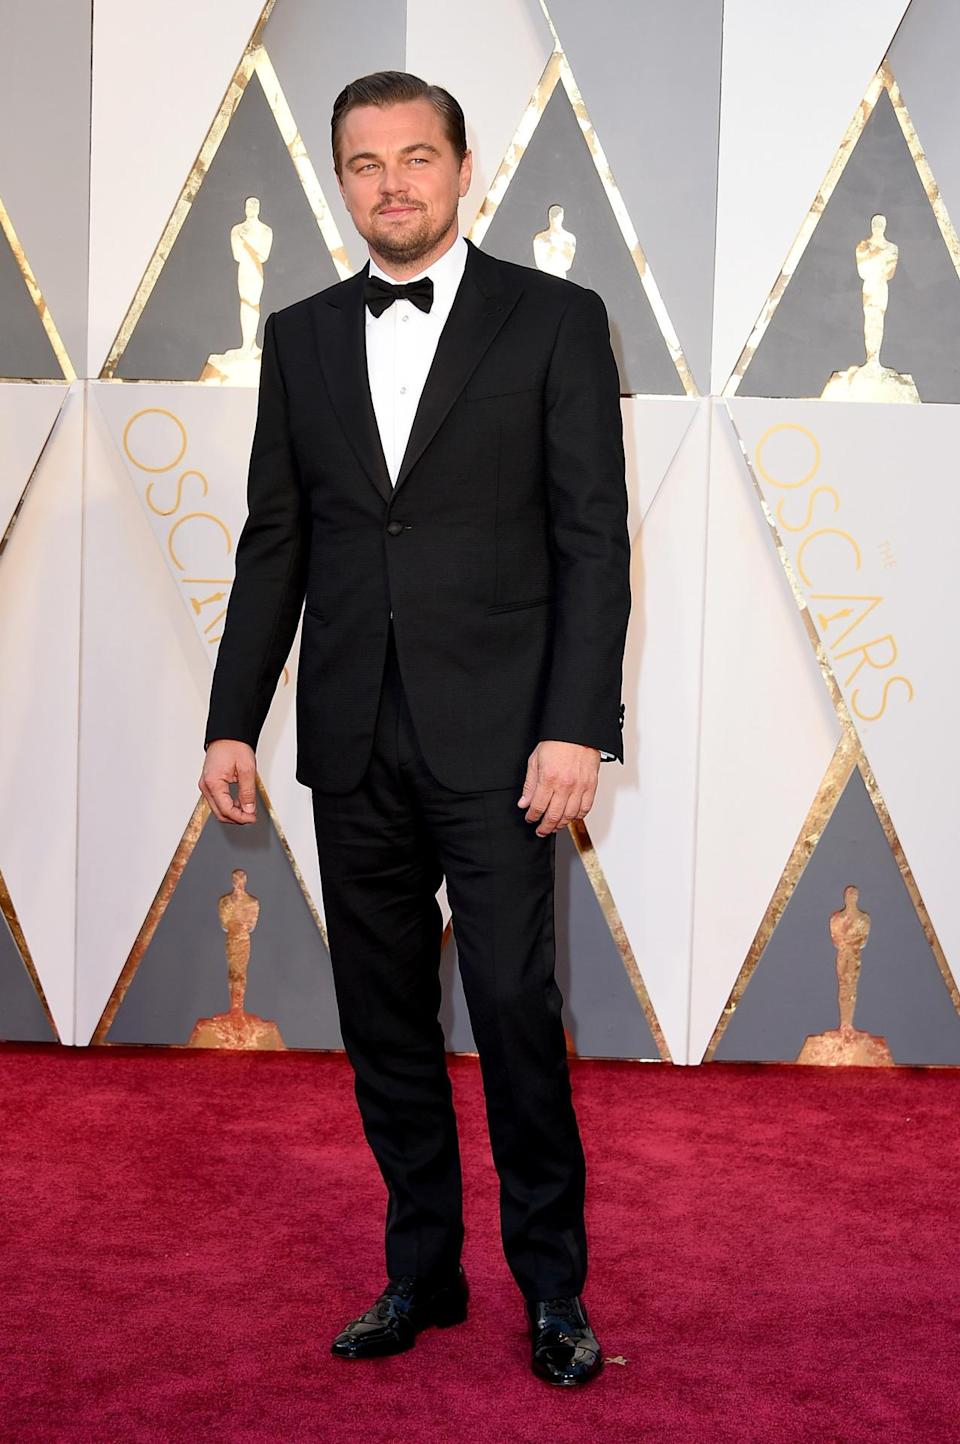 <p>A big night for Leonardo DiCaprio, he didn't really dress like a winner (see: Kevin Hart). But maybe sticking with a classic black tuxedo, something he's comfortable in, was a way for him to calm his nerves. <i><i>(Photo: Getty Images)</i></i></p>